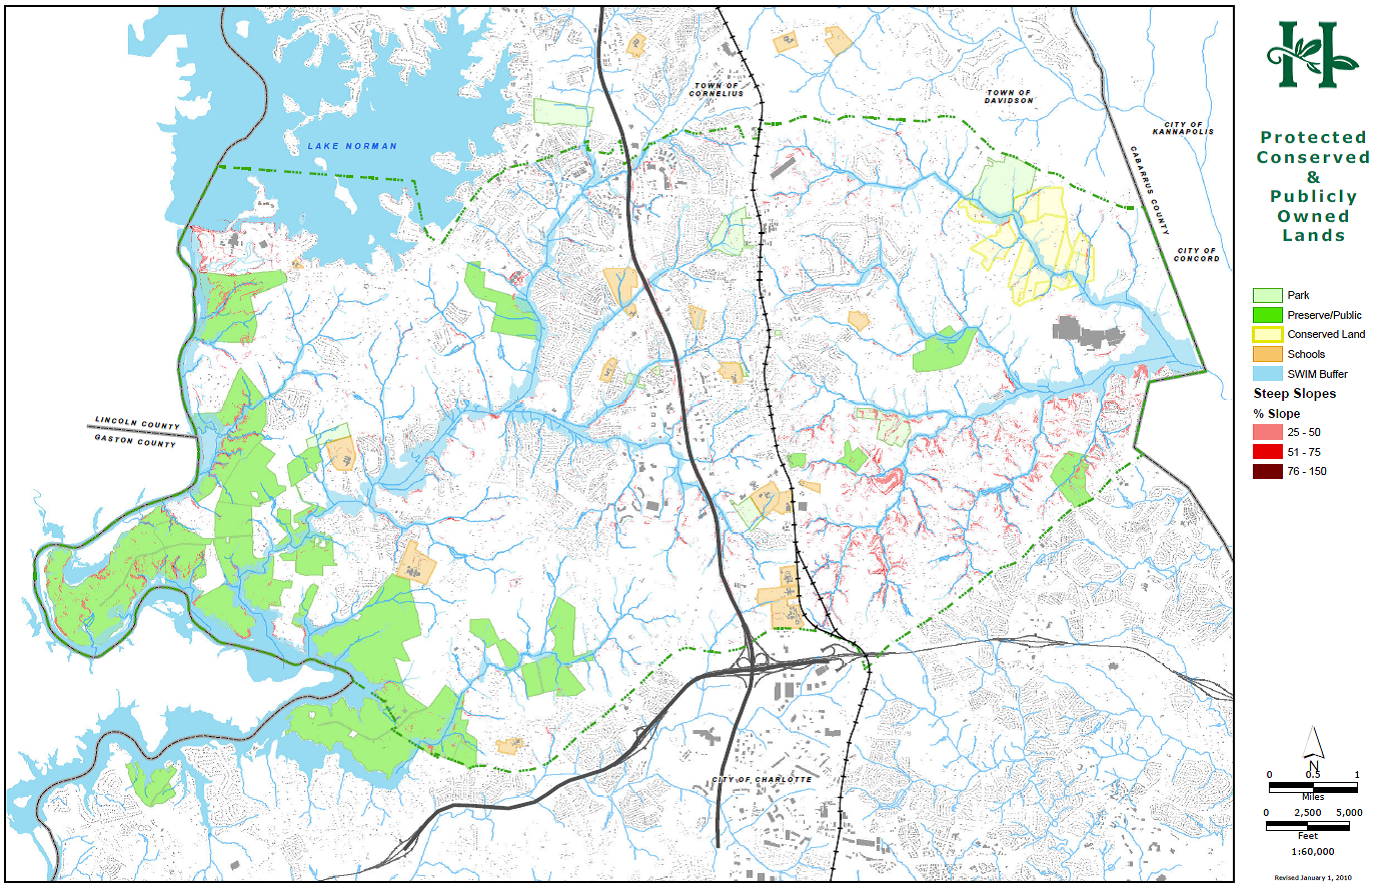 Map E-1 Protected Conserved and Publicly Owned Lands